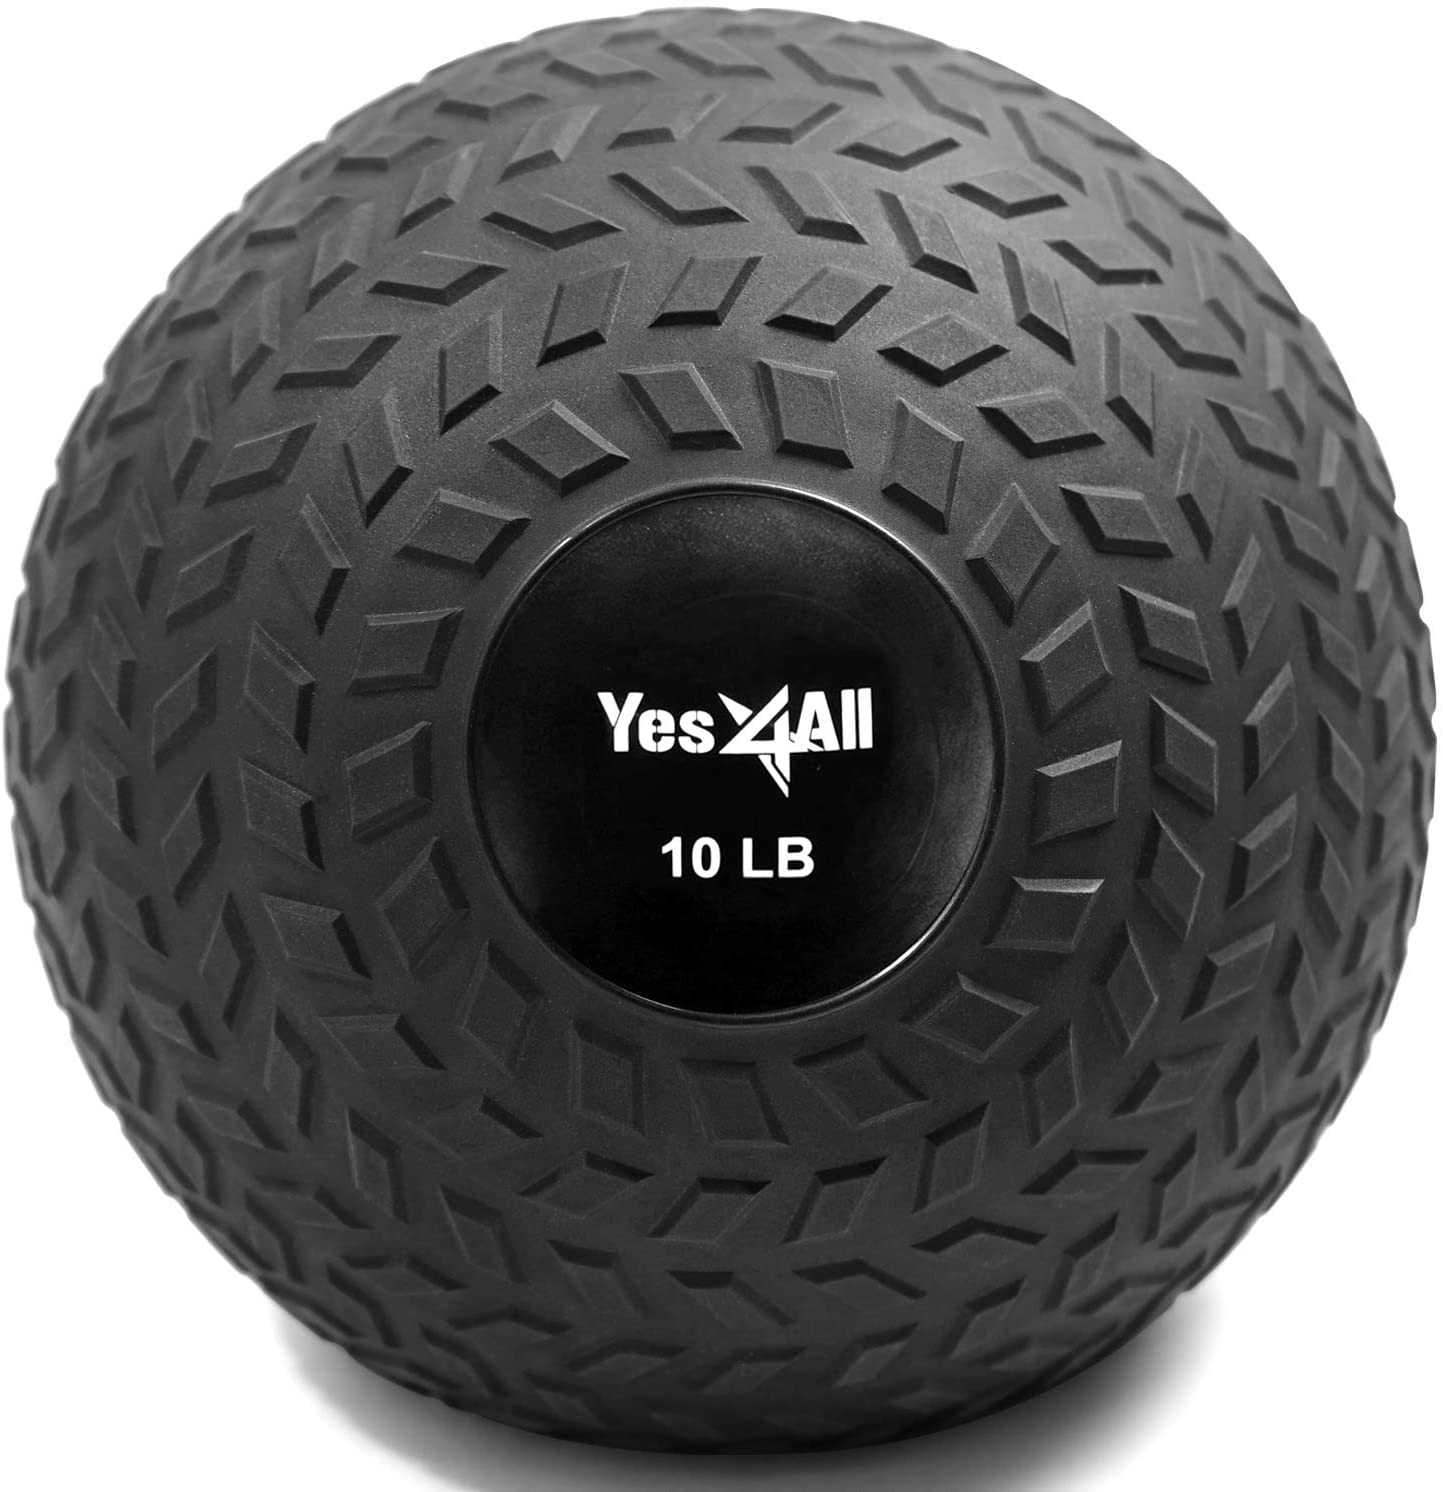 Yes4All Slam Balls Review